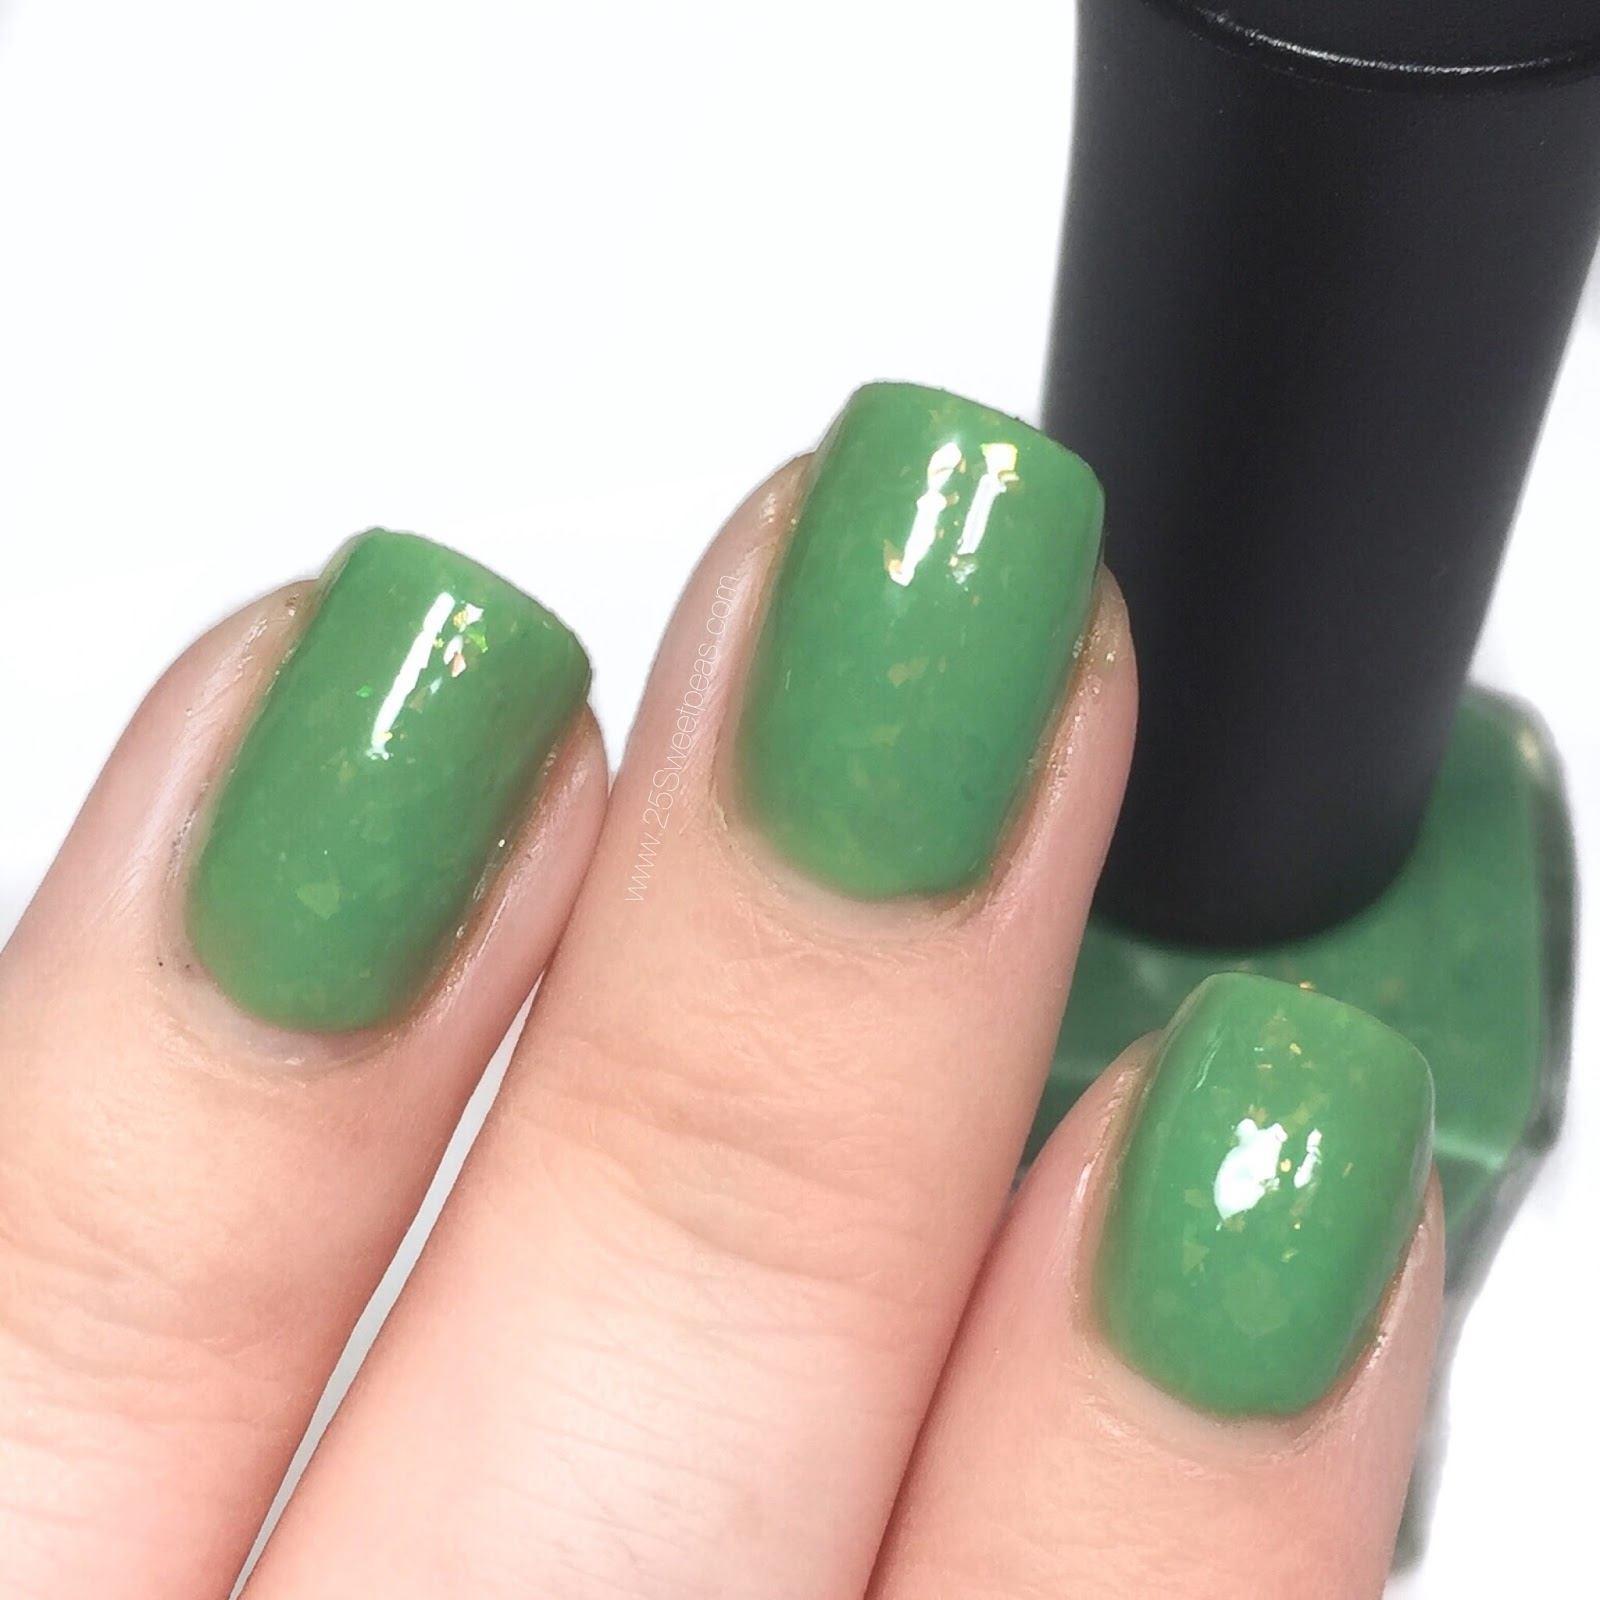 Lemming Lacquer Disjointed